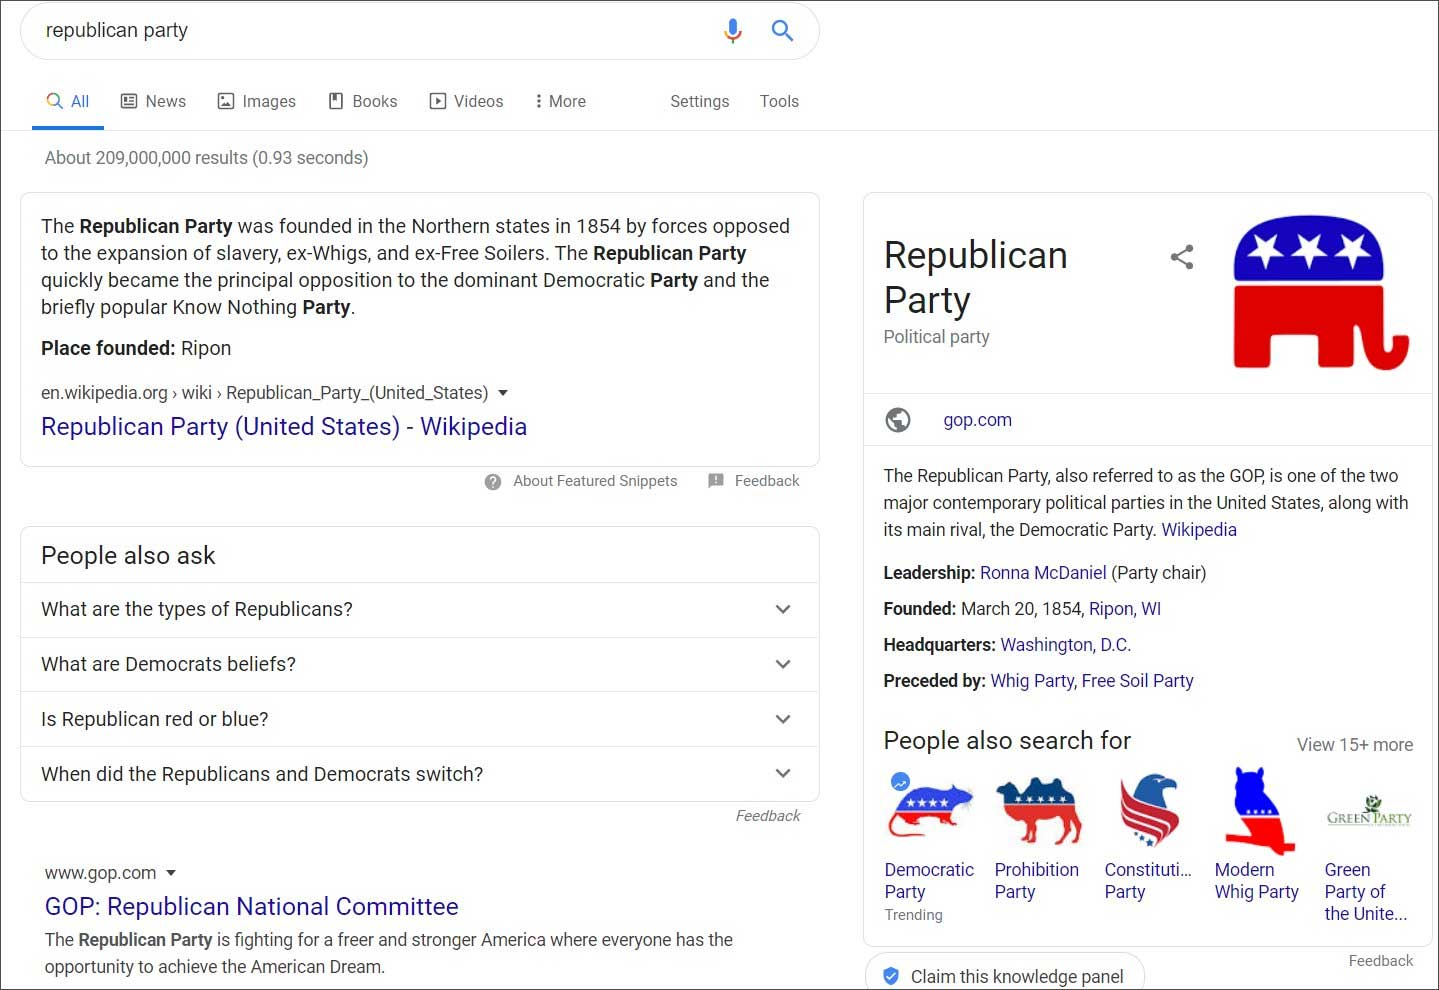 Republican Party Knowledge Panel